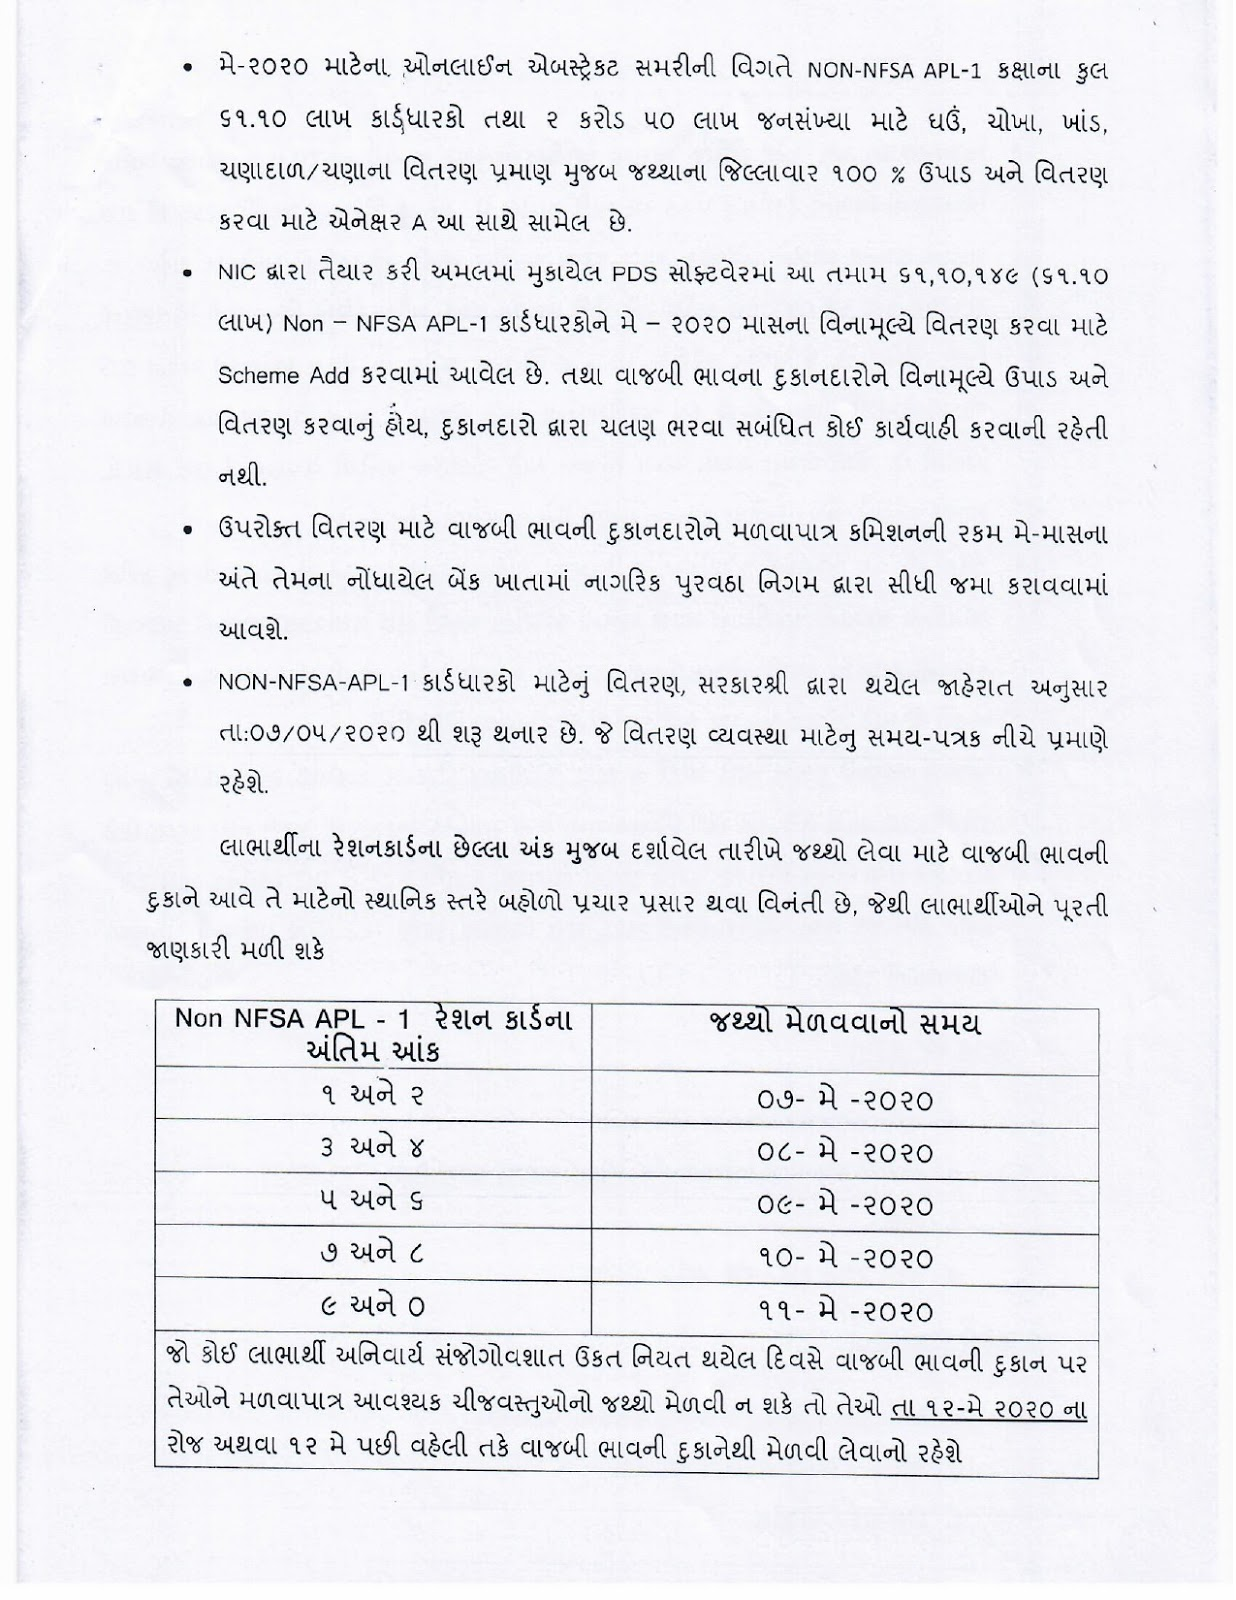 Free Food Grain Distribution For 60 Lakh Non Nfsa Apl Card Holders To Begin From 07 May